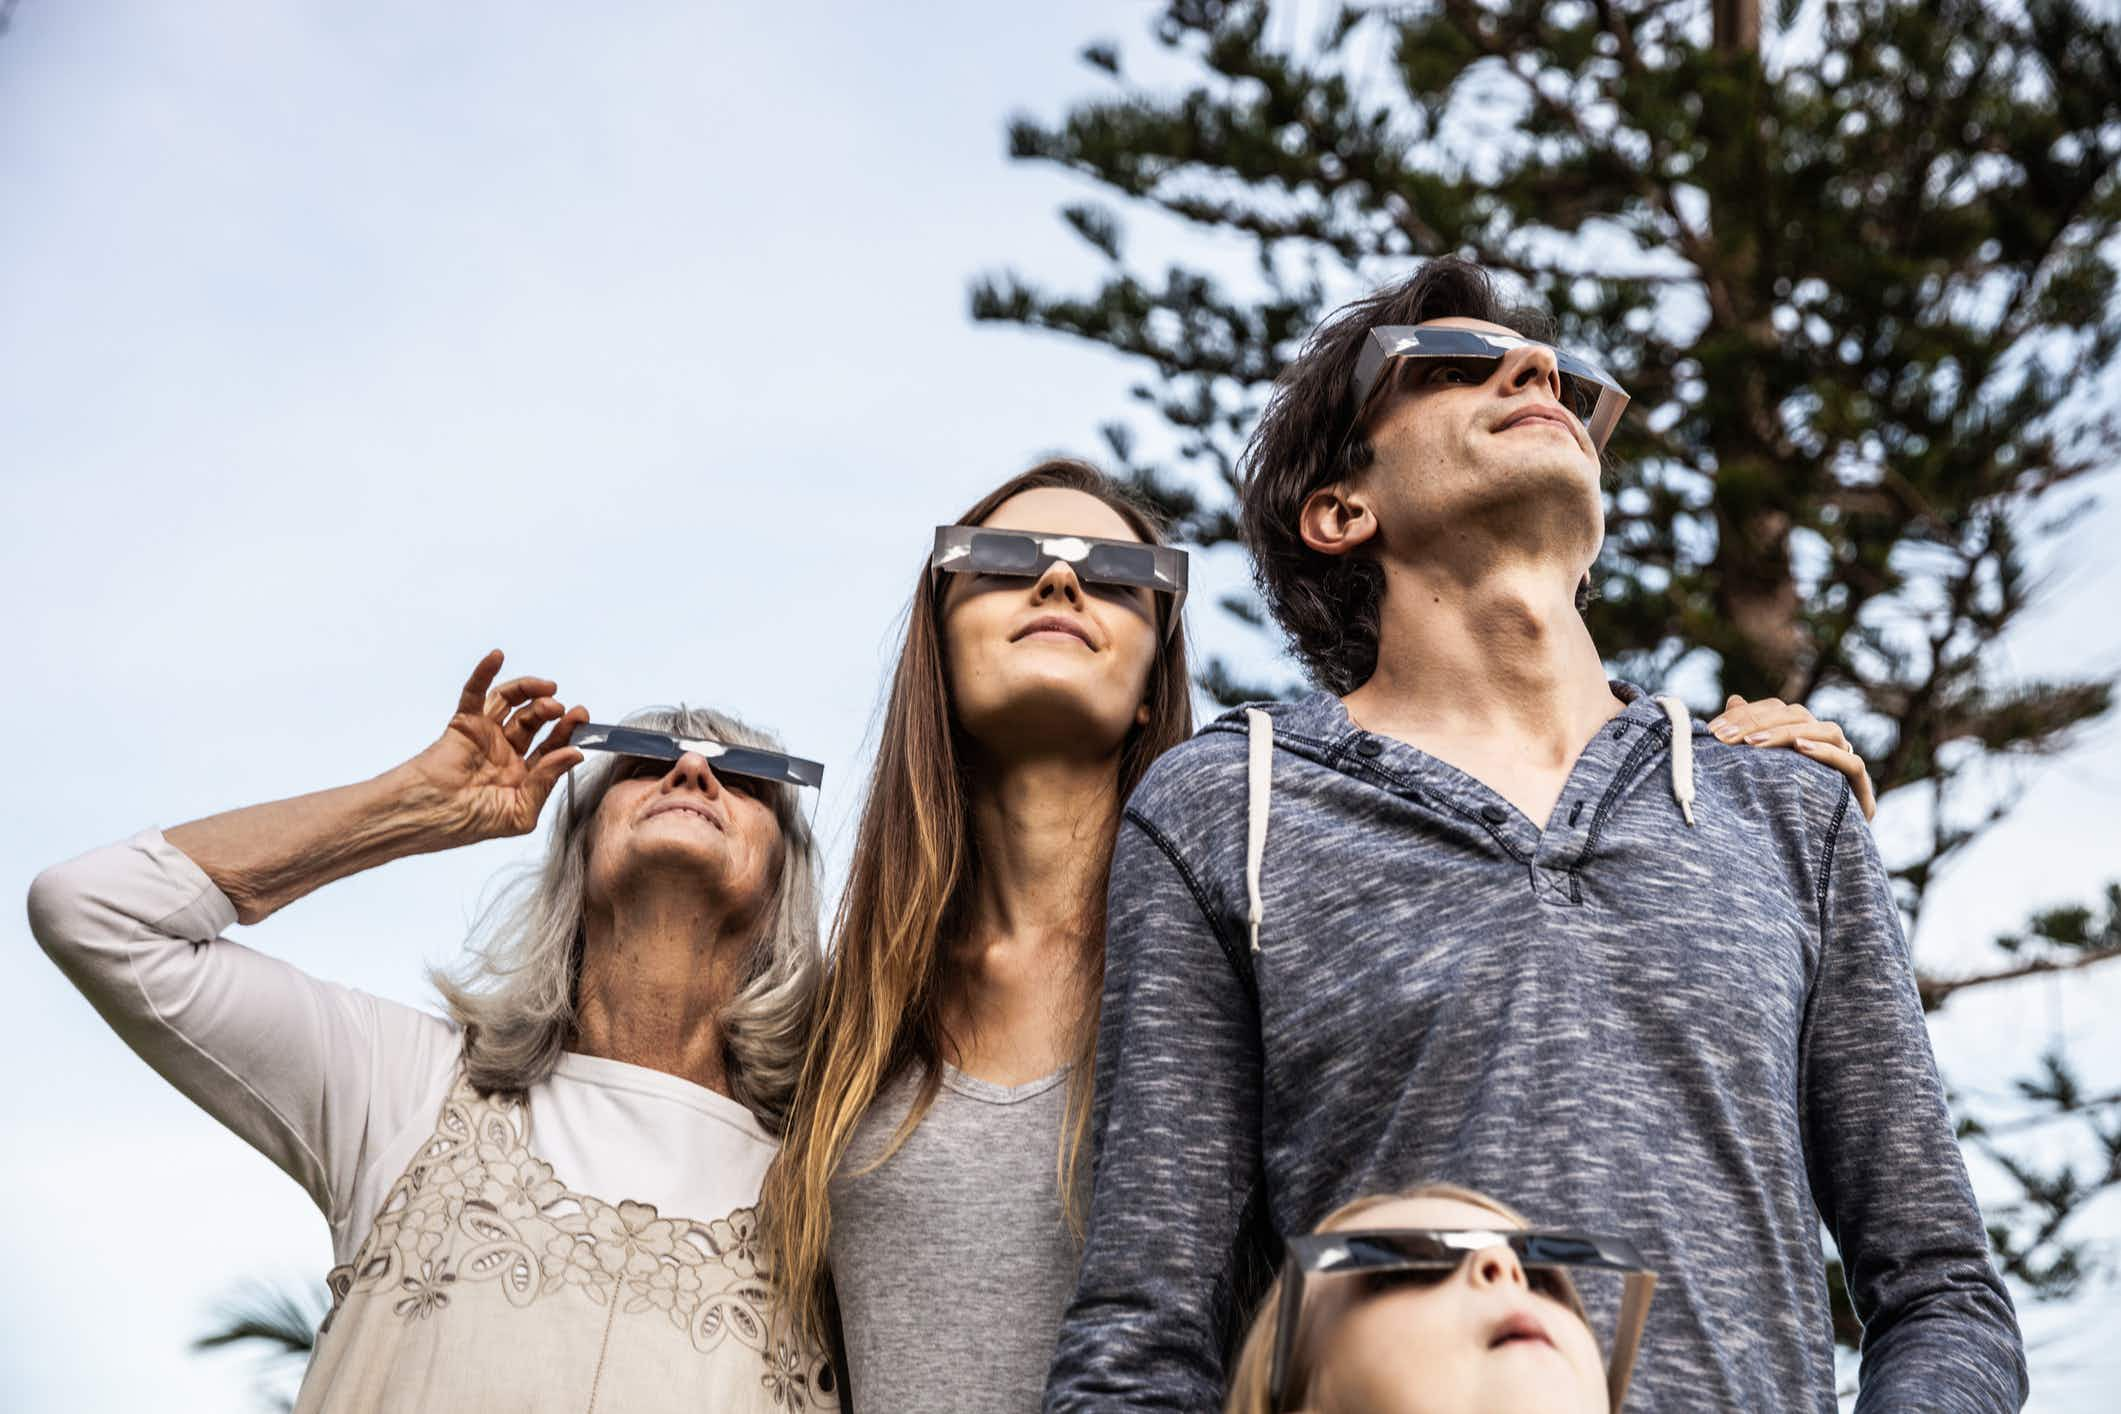 It's less than a month until the US total solar eclipse but you can still make plans to see it